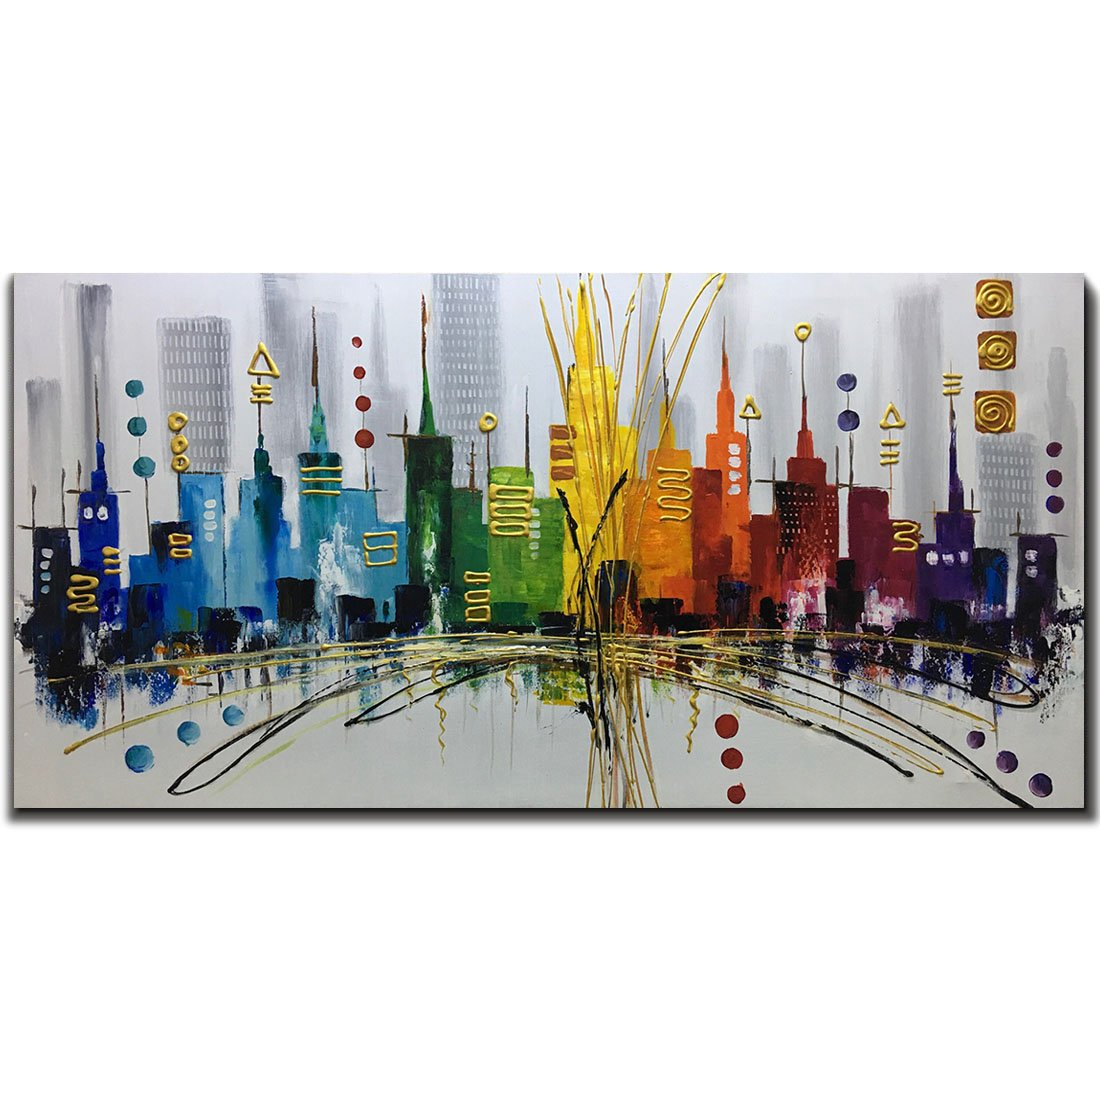 Fasdi-ART Large Modern Contemporary Cityscape Artwork Hand Painted Abstract Pictures Stretched Wood Framed Oil Paintings on Canvas Wall Art Décor for Living Room Decoration 24x48inch by Fasdi-ART